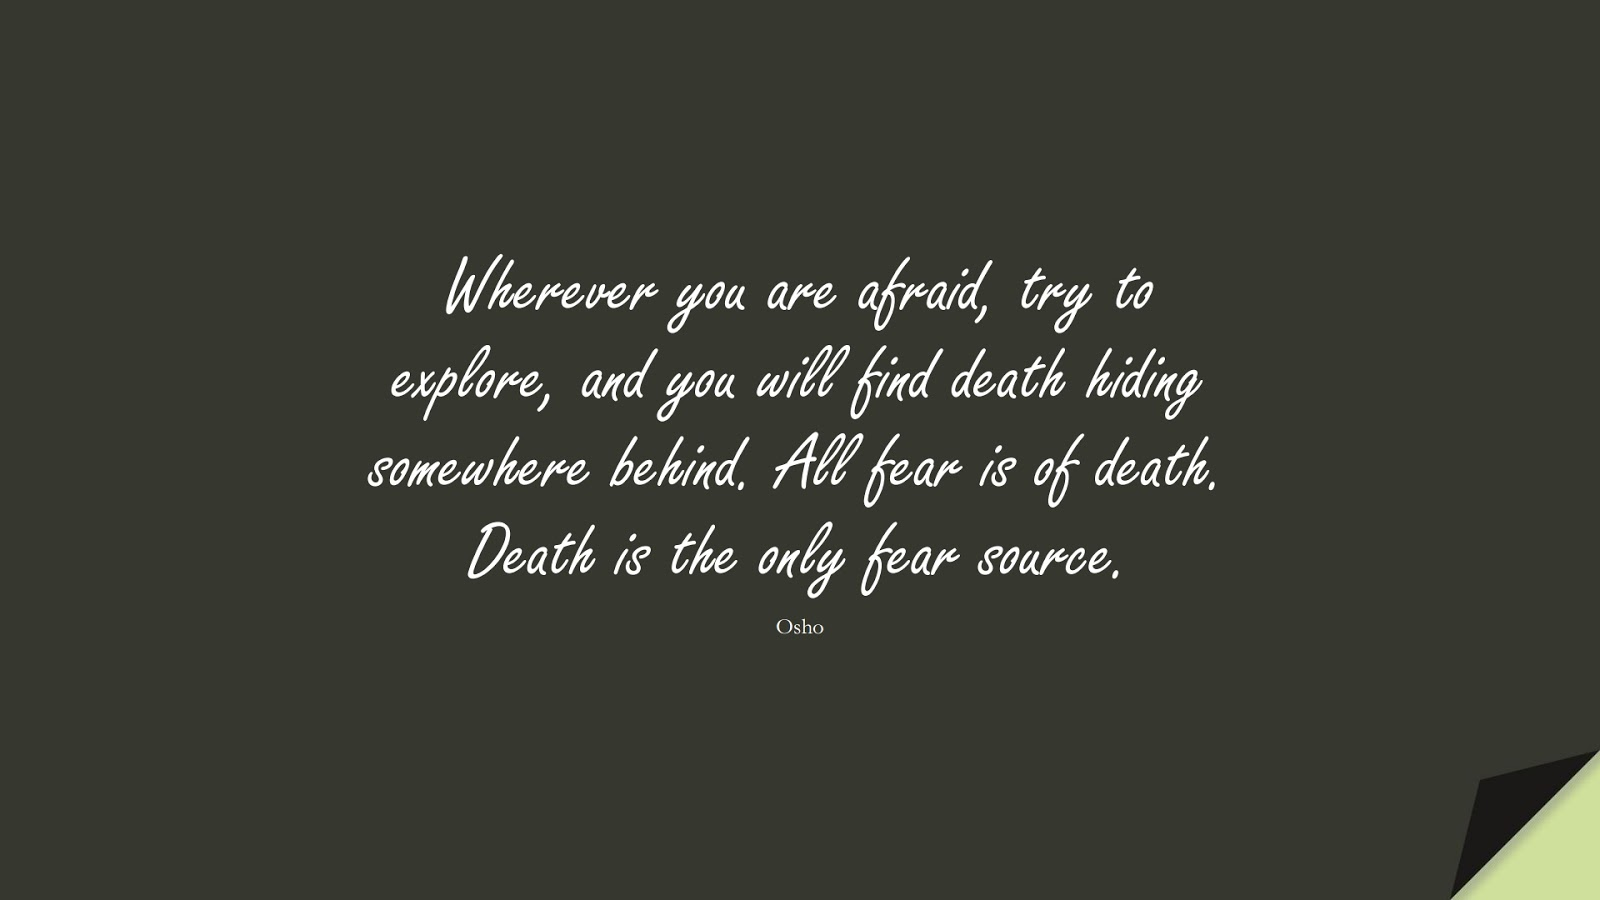 Wherever you are afraid, try to explore, and you will find death hiding somewhere behind. All fear is of death. Death is the only fear source. (Osho);  #FearQuotes